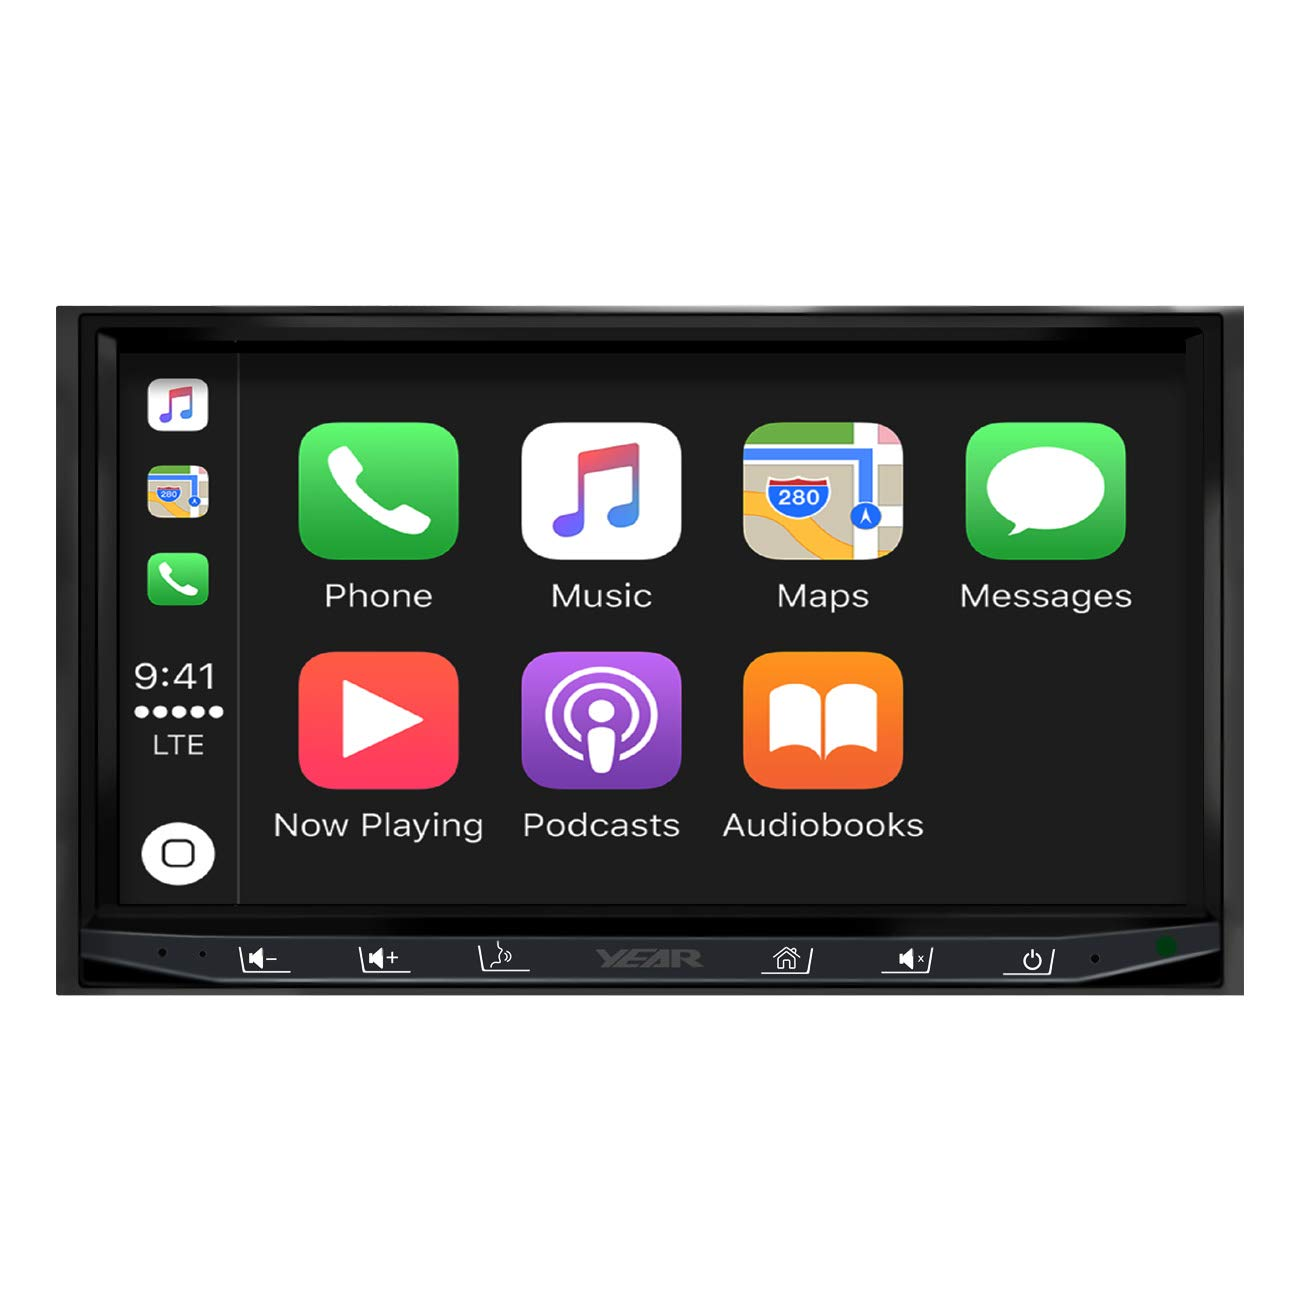 ATOTO Year Series in-Dash Double Din Digital Media Car Stereo - SA102 Classic CarPlay & Android Auto Receiver w/Bluetooth, AM/FM Radio Tuner,USB Video & Audio,and More by ATOTO